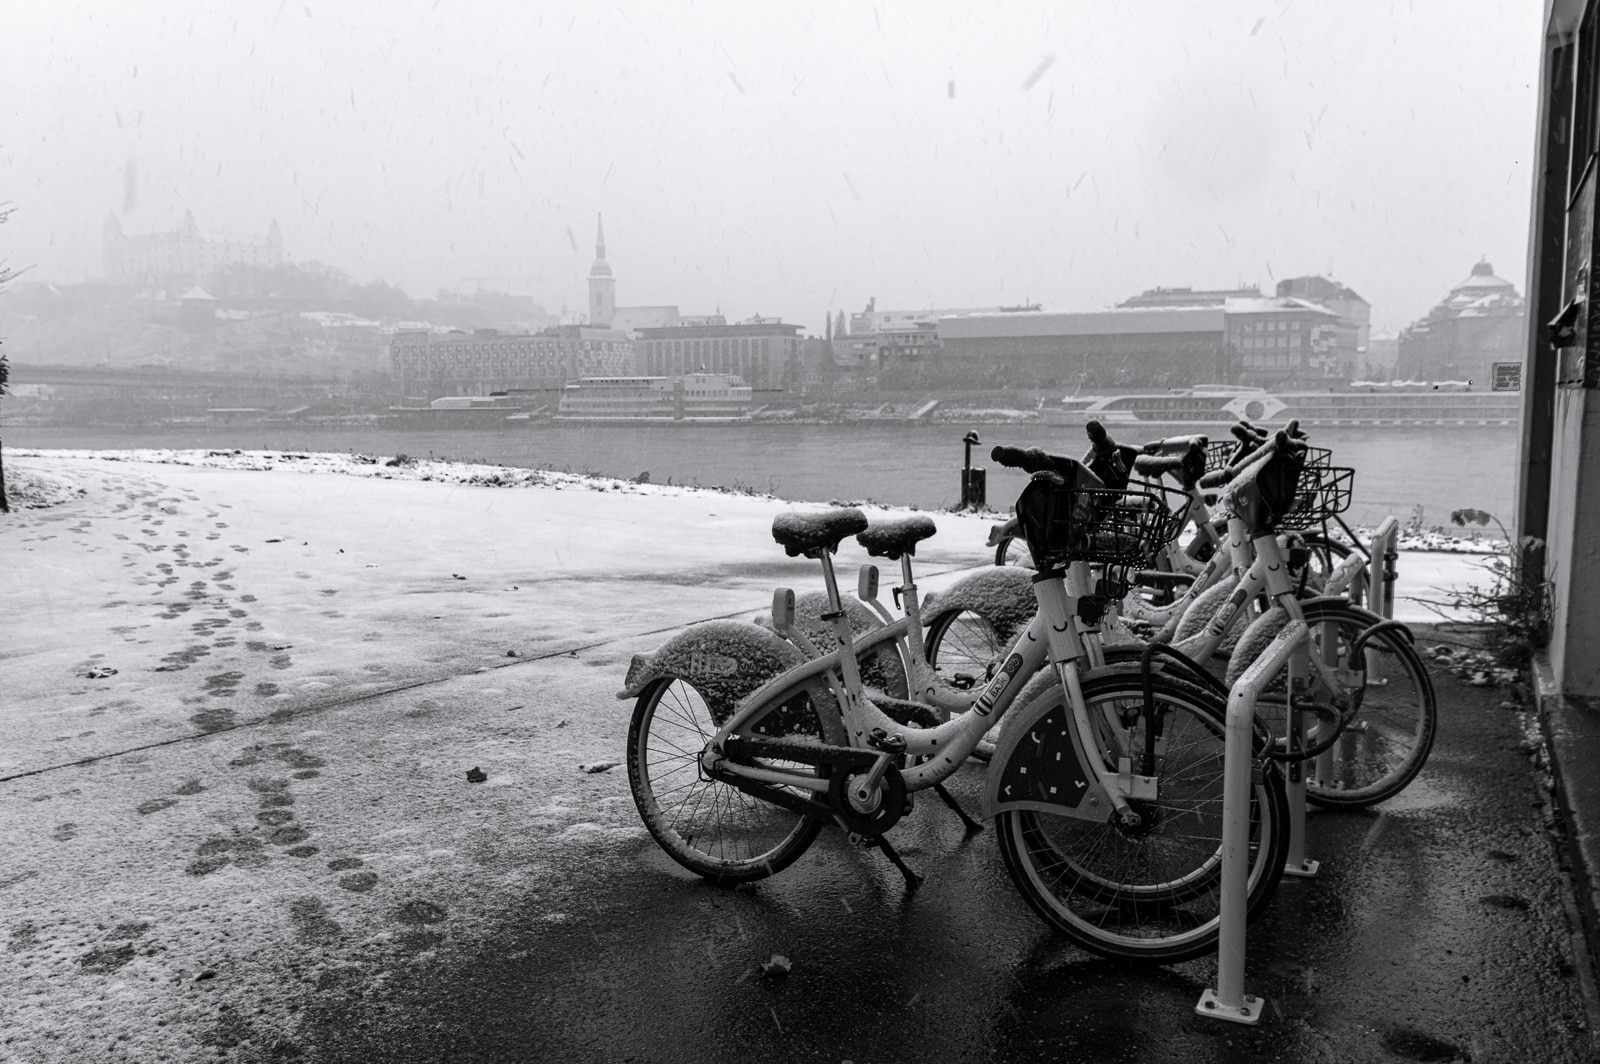 bicycles parked by river Danube in Bratislava